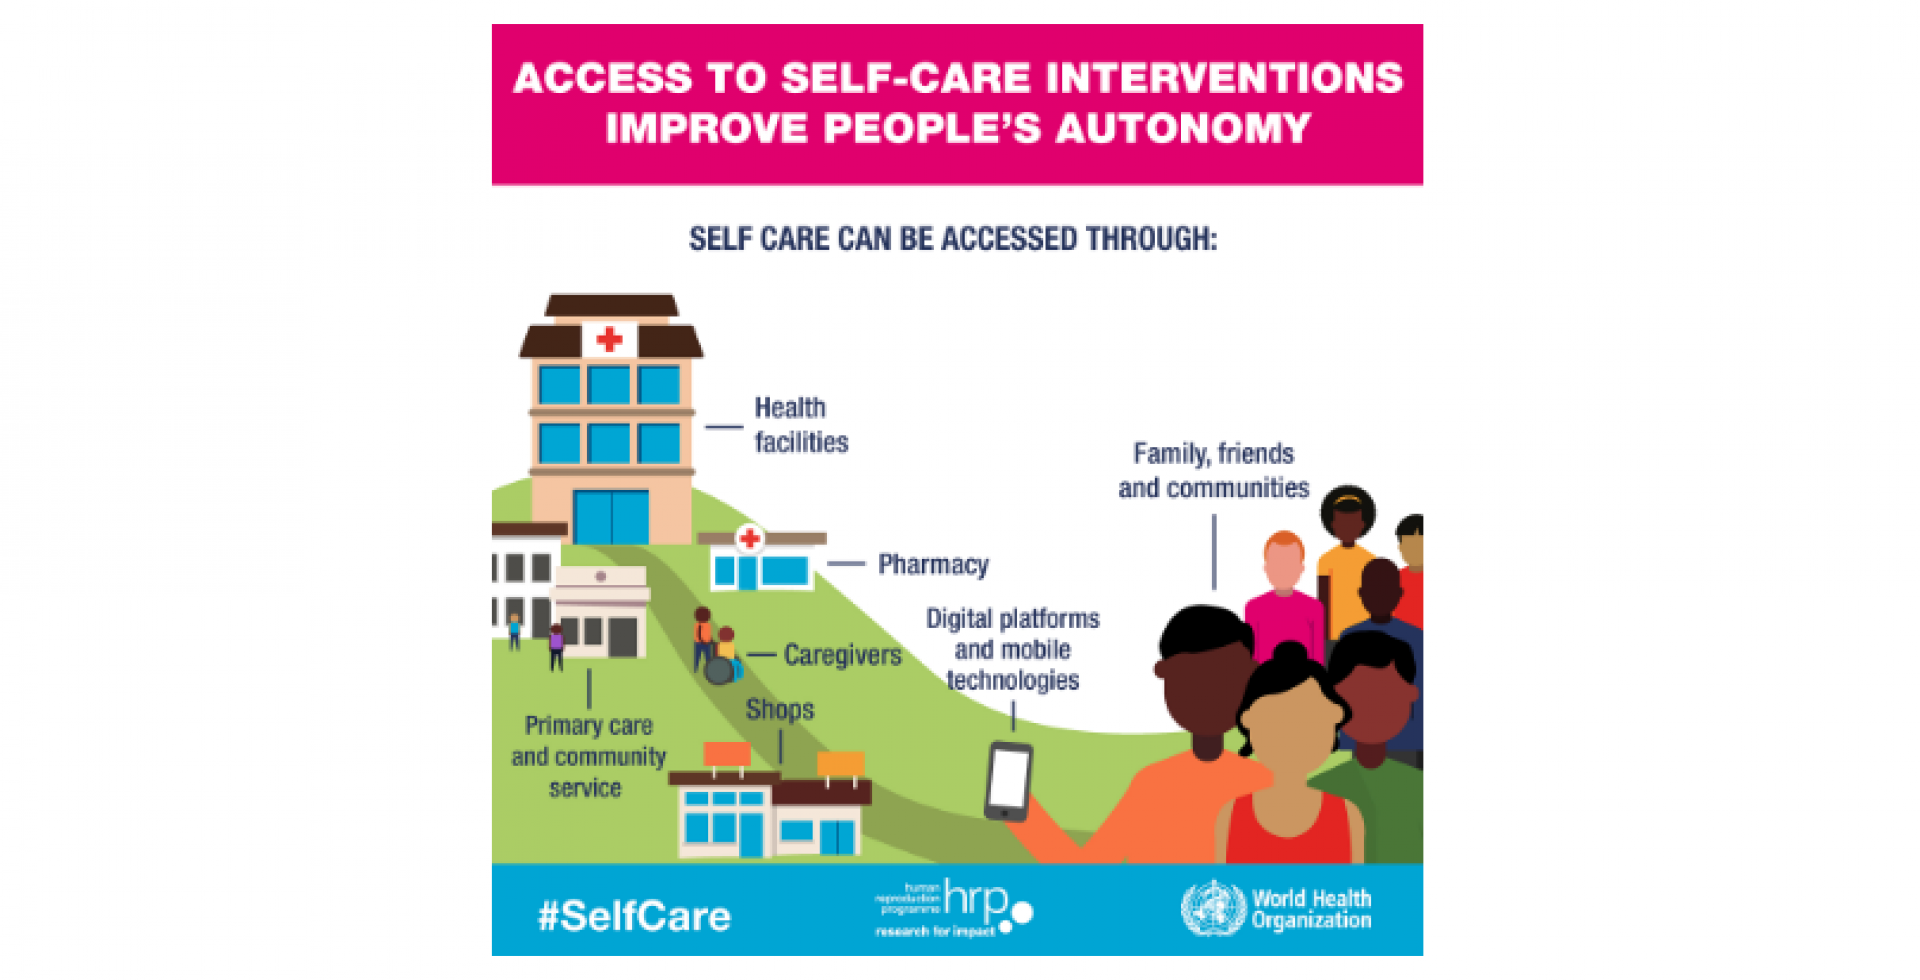 Access to Self Care Interventions Improve People's Autonomy